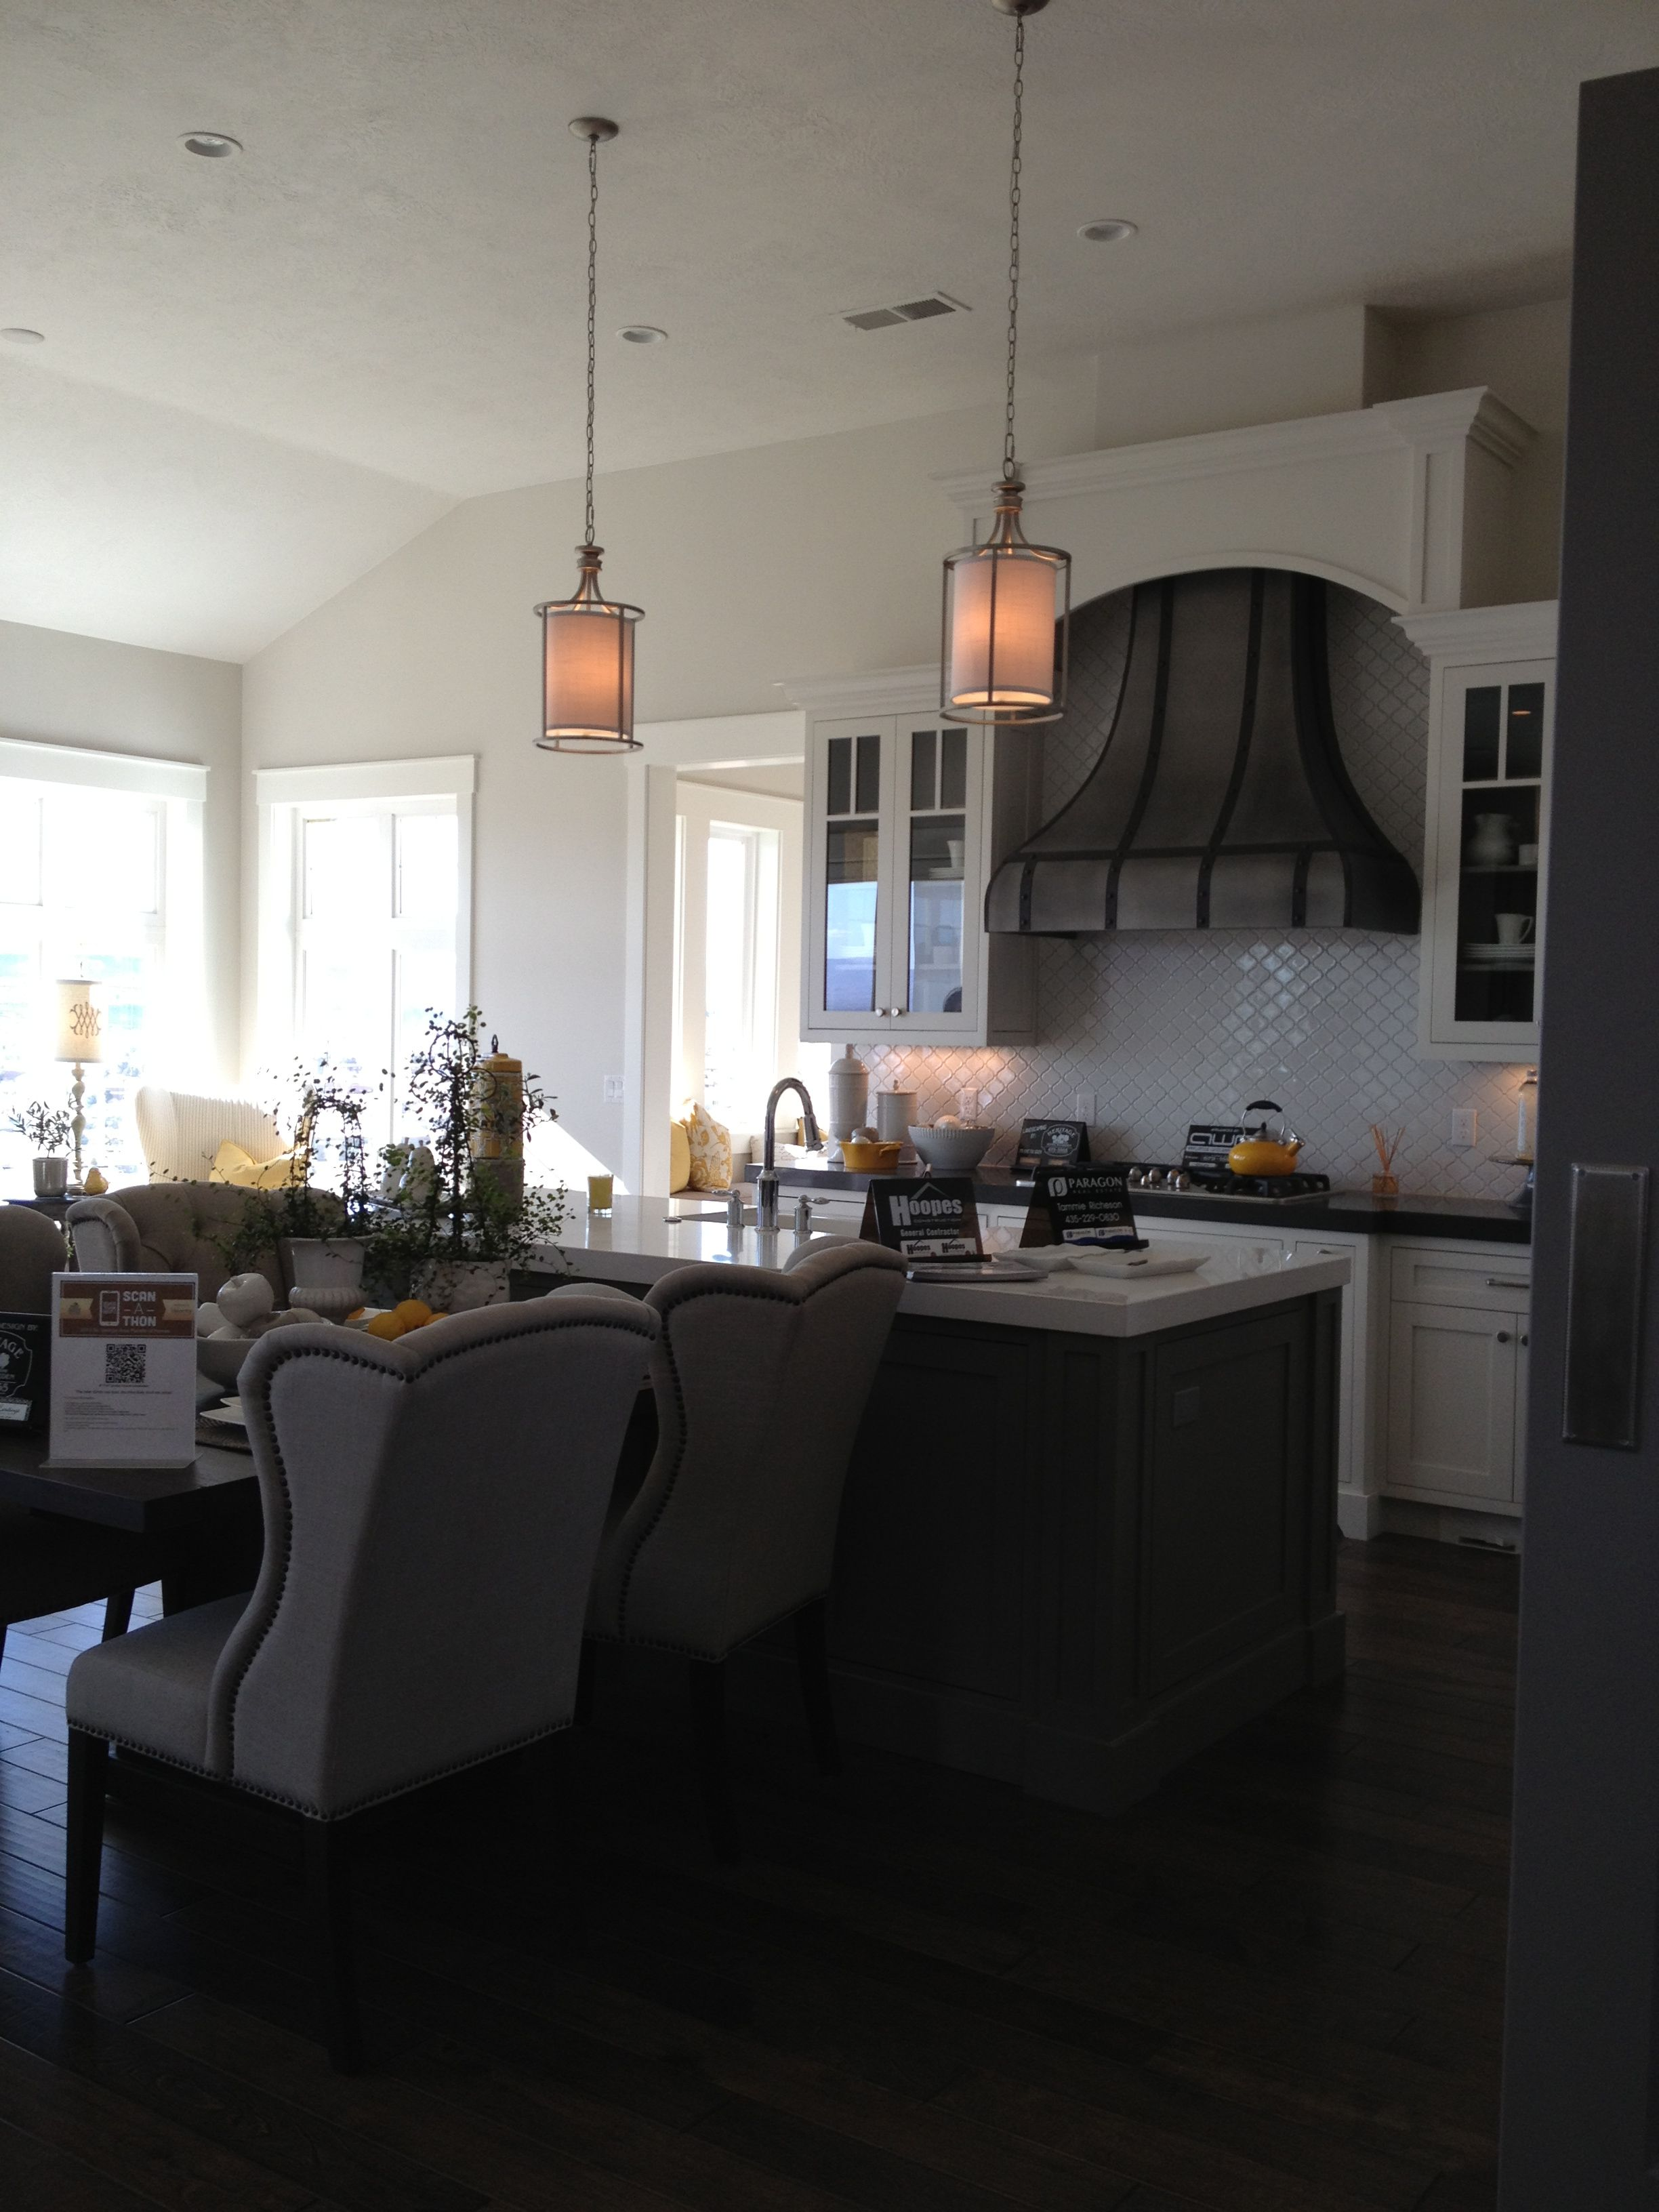 Dining Table Chairs In Front Of Kitchen Island Sitting Area Where Dining Table Would Normally Be Placed Dining Table Chairs Kitchen Colors Kitchen